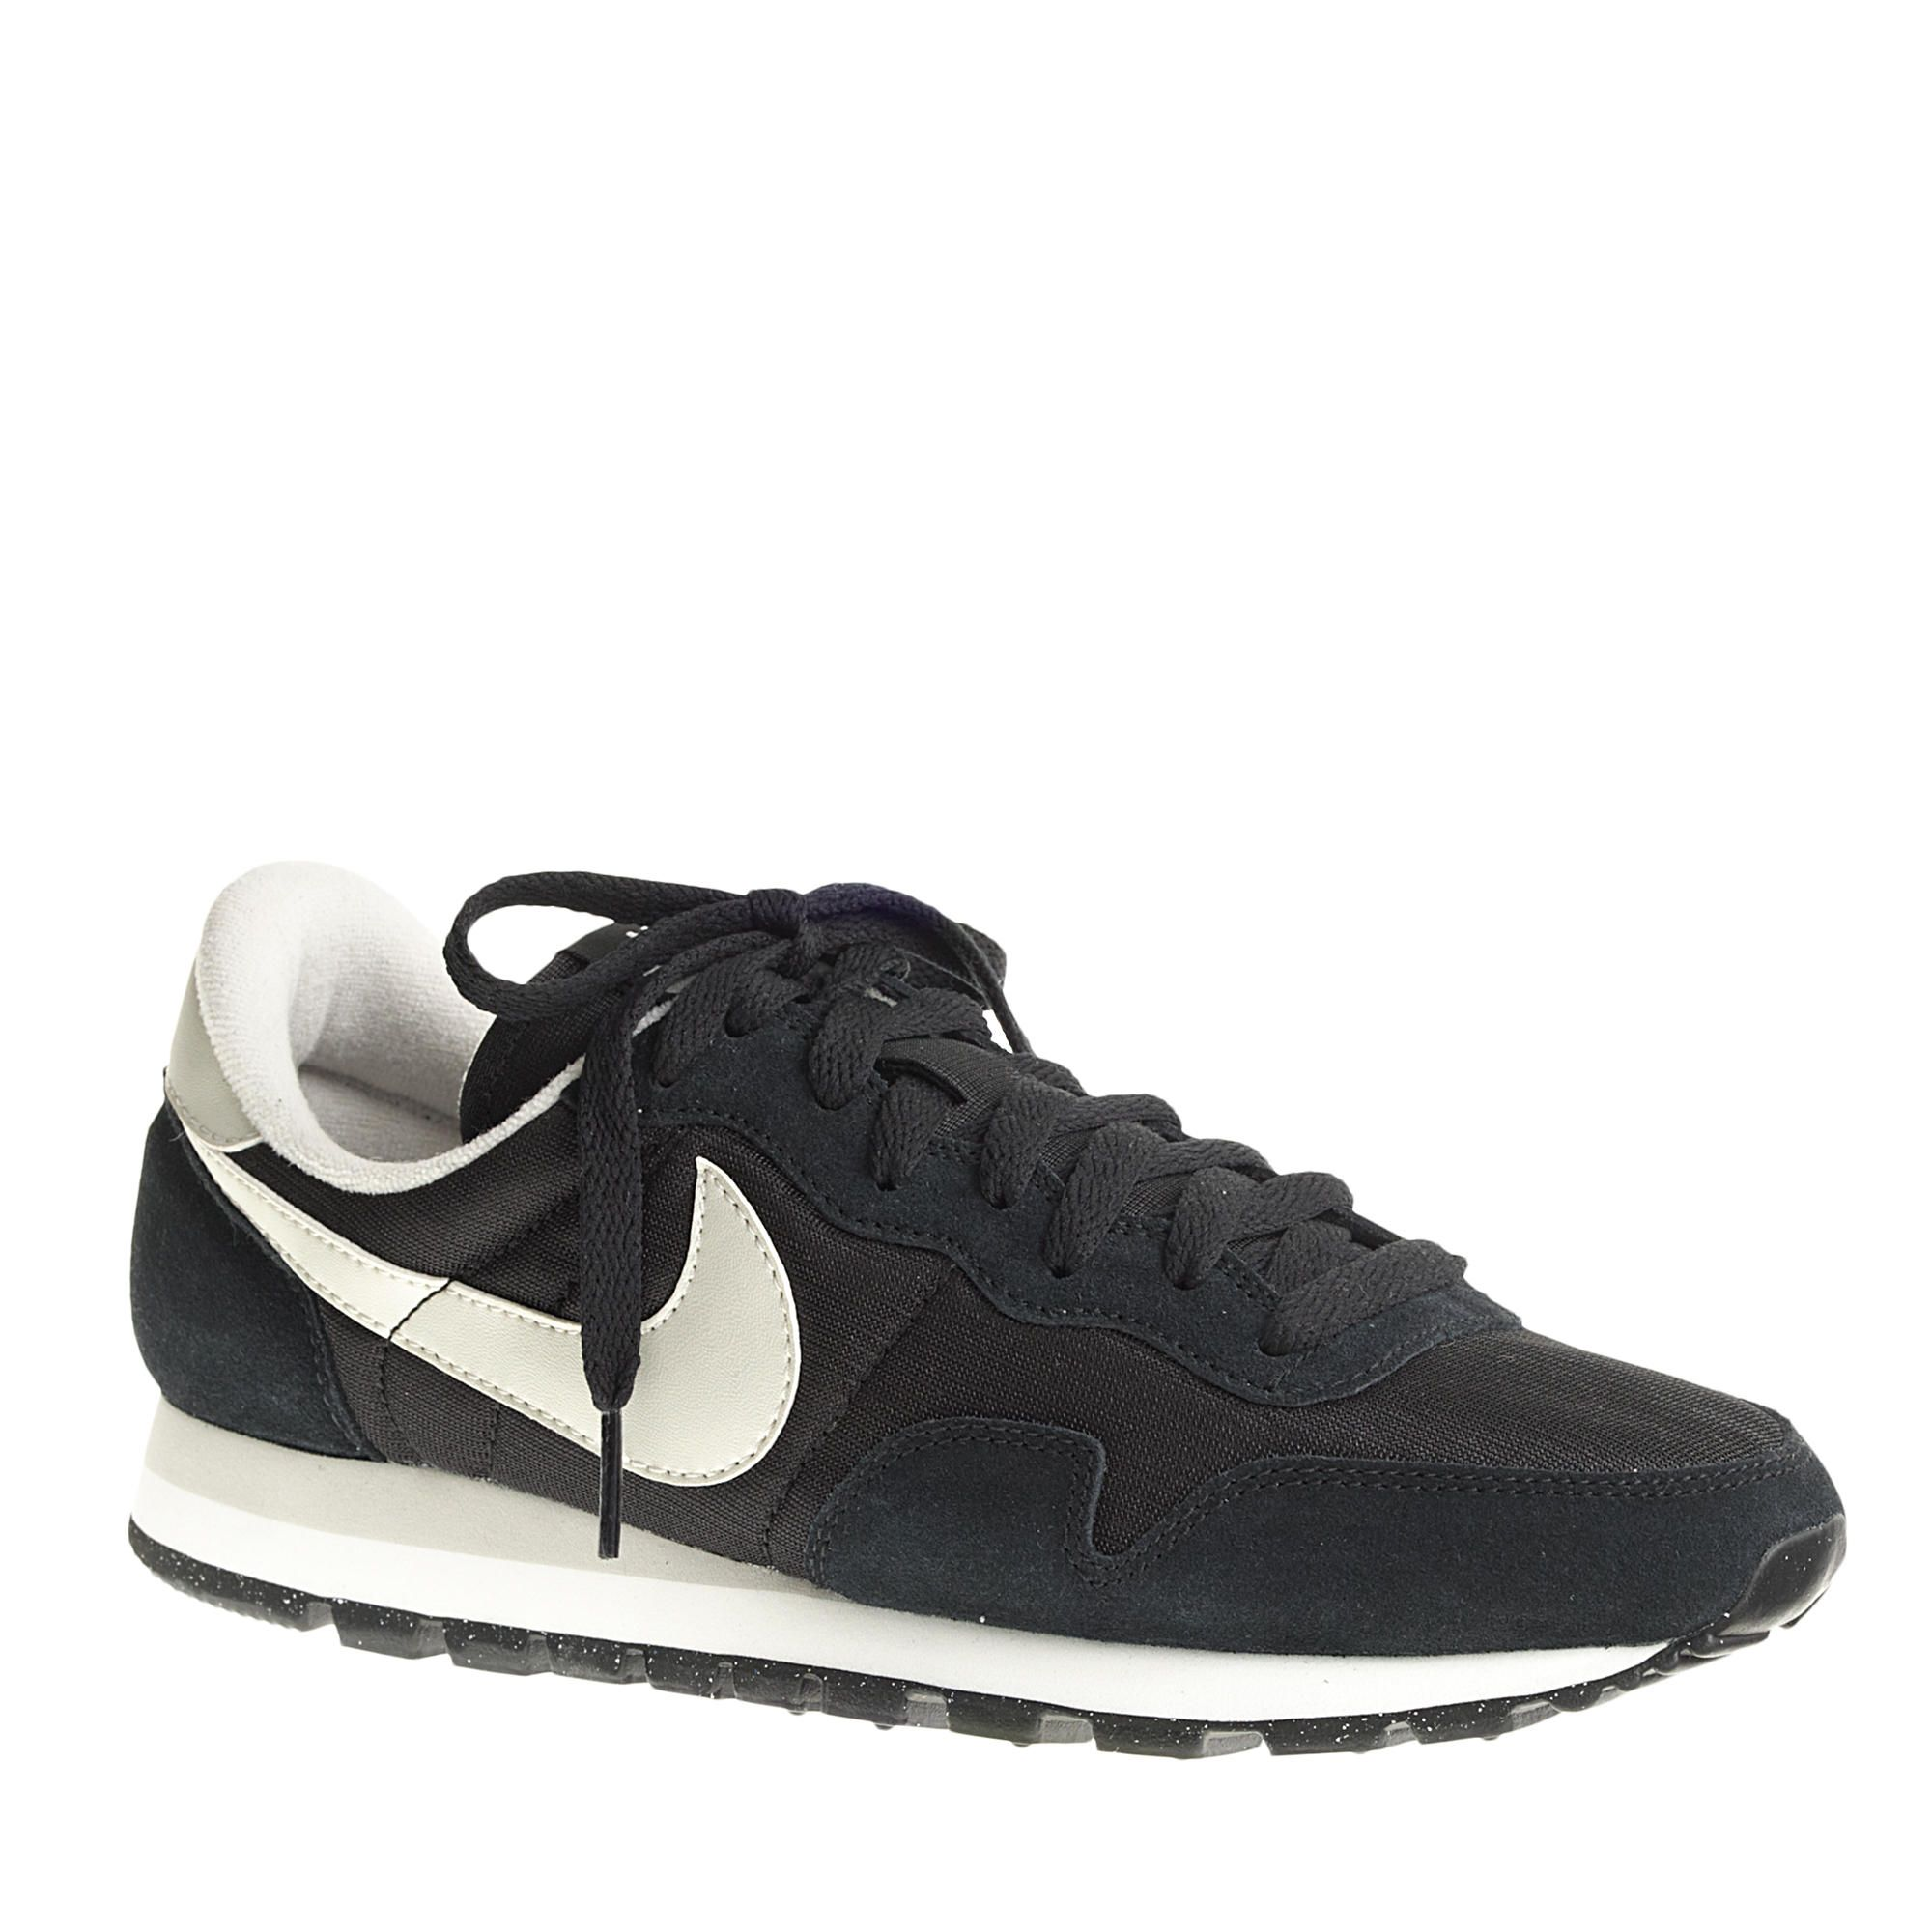 7990661dcce Crew Women s Nike® Vintage Collection Air Pegasus sneakers